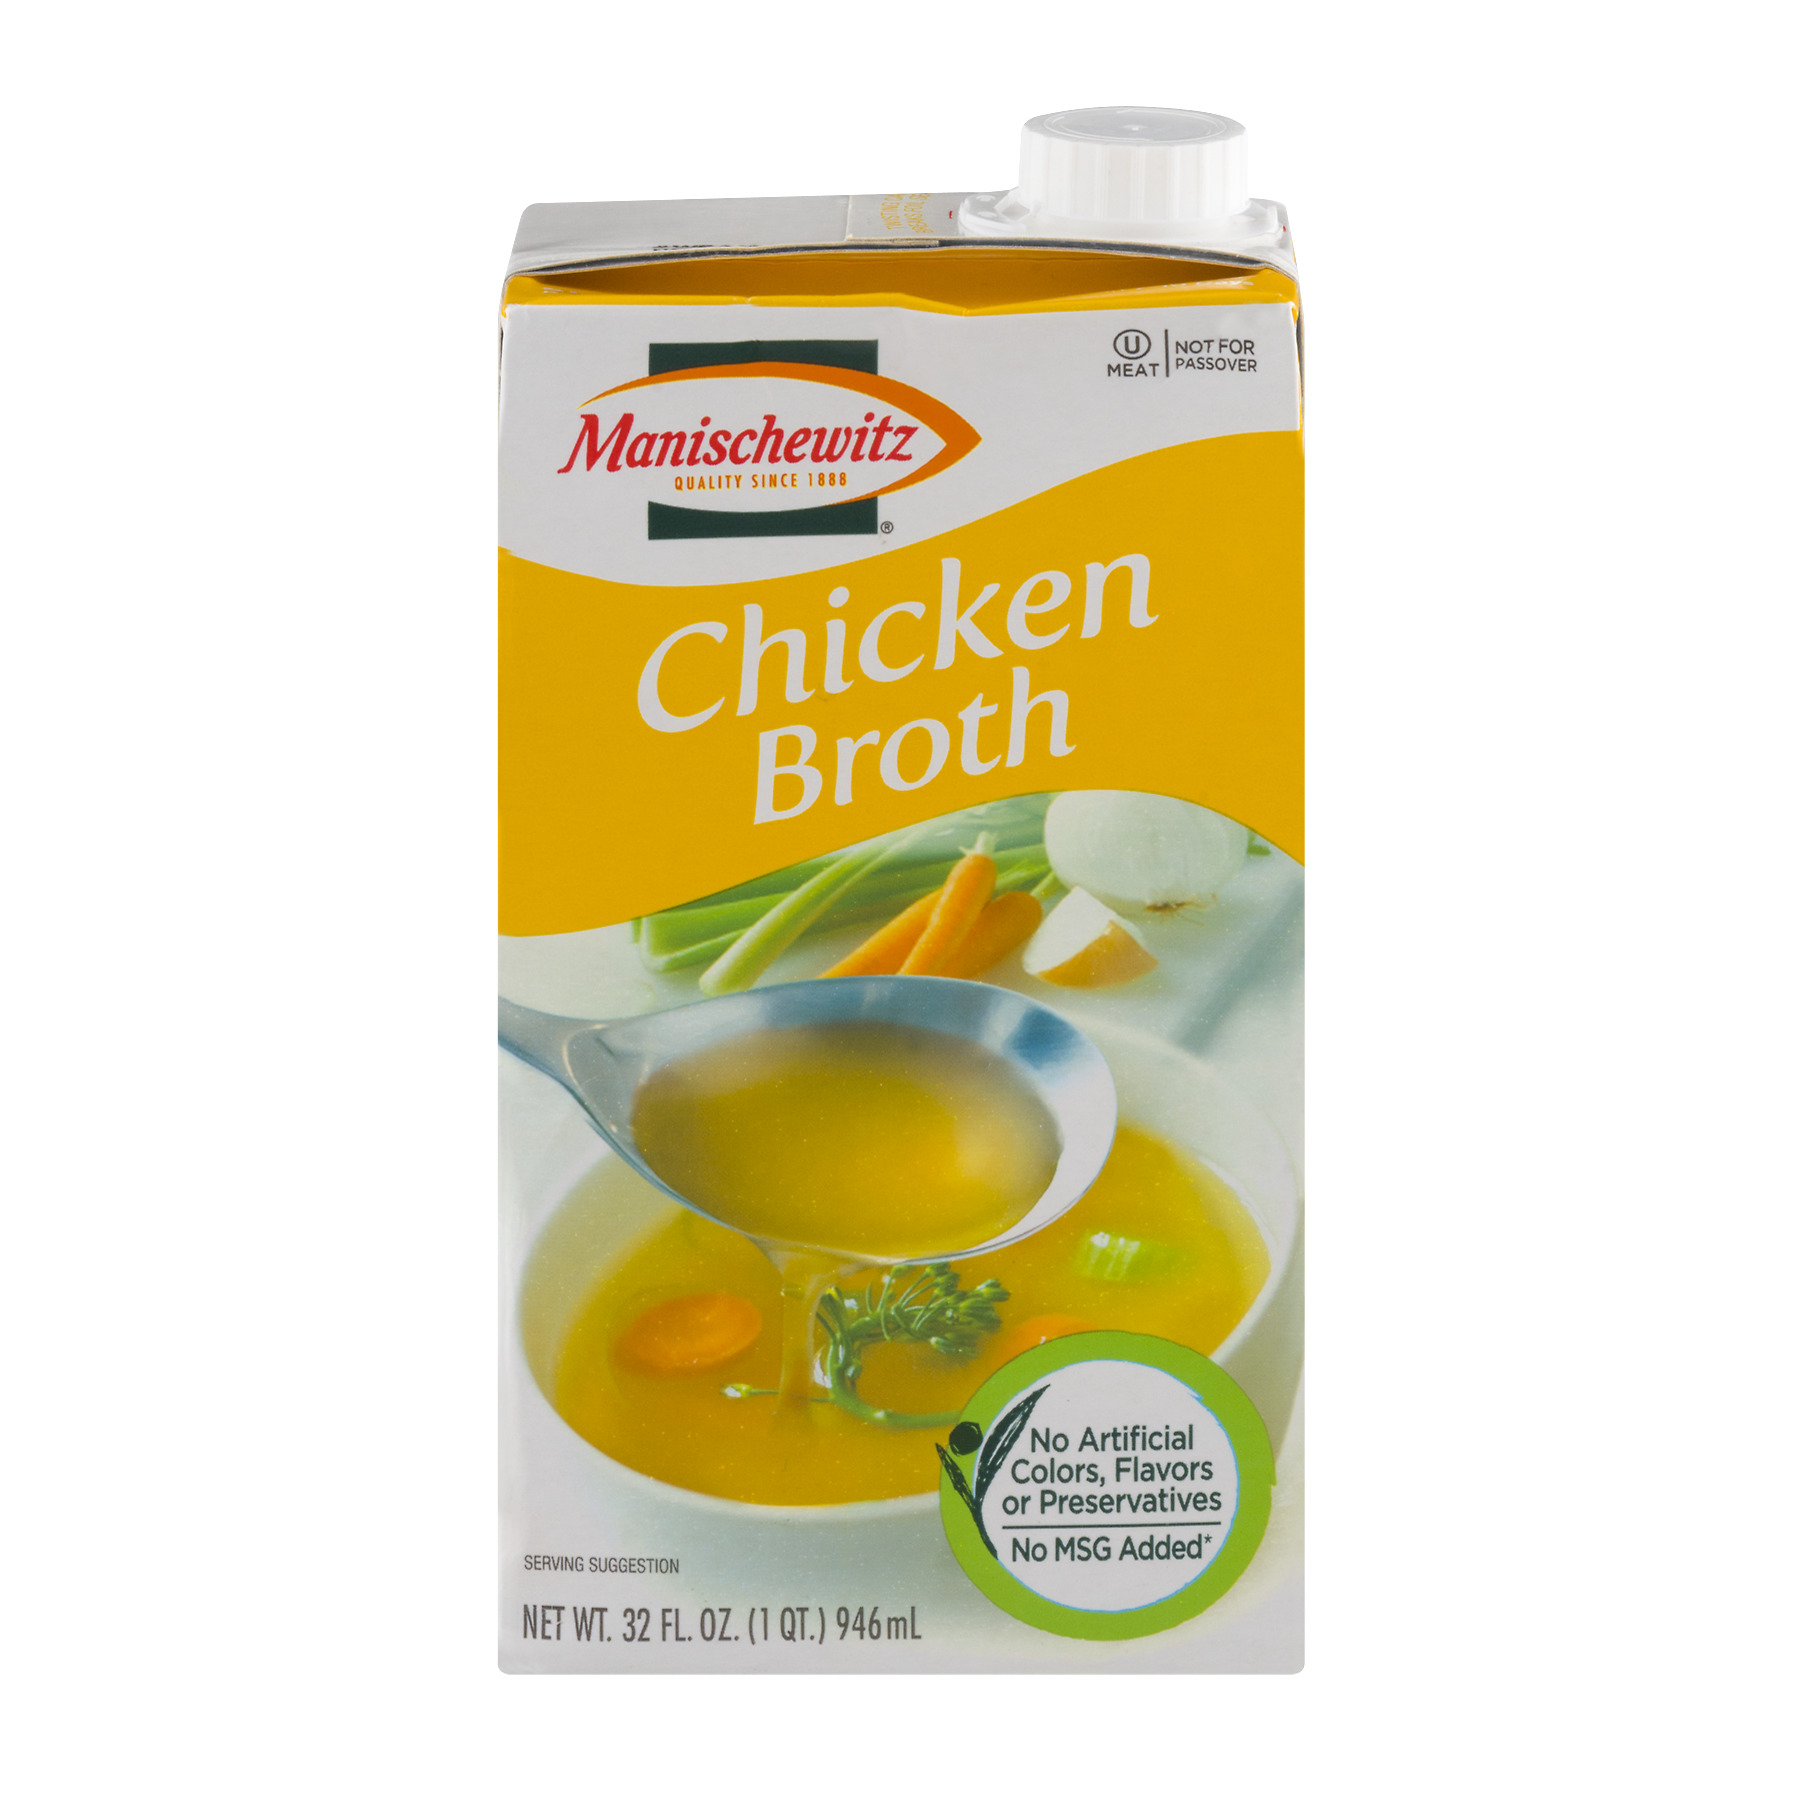 Manischewitz Chicken Broth, 32.0 FL OZ